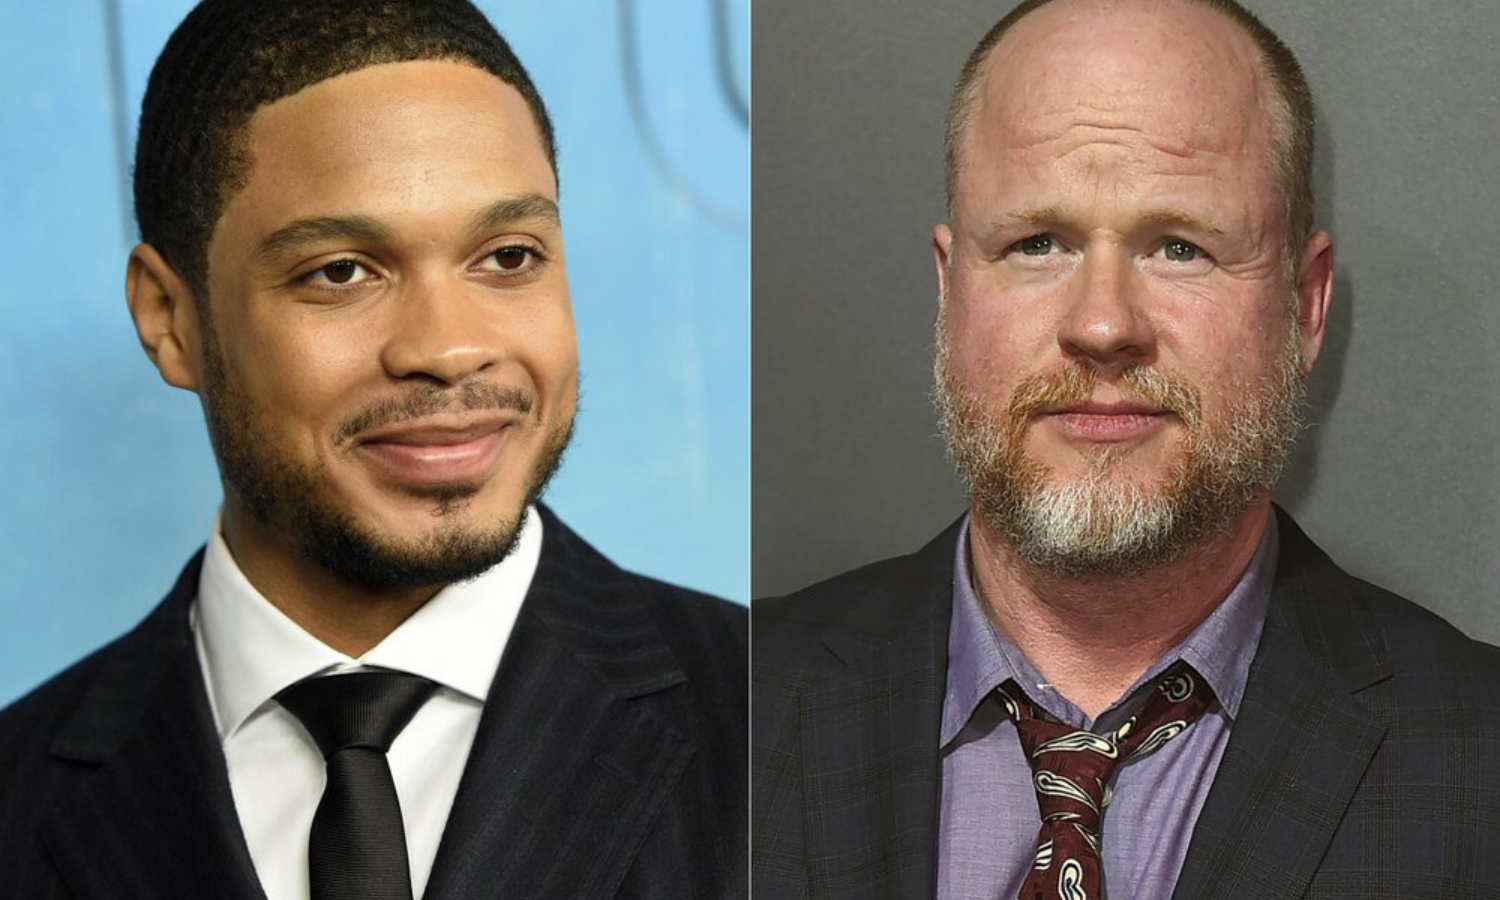 JUSTICE LEAGUE Star Ray Fisher Continues To Call Out Director Joss Whedon